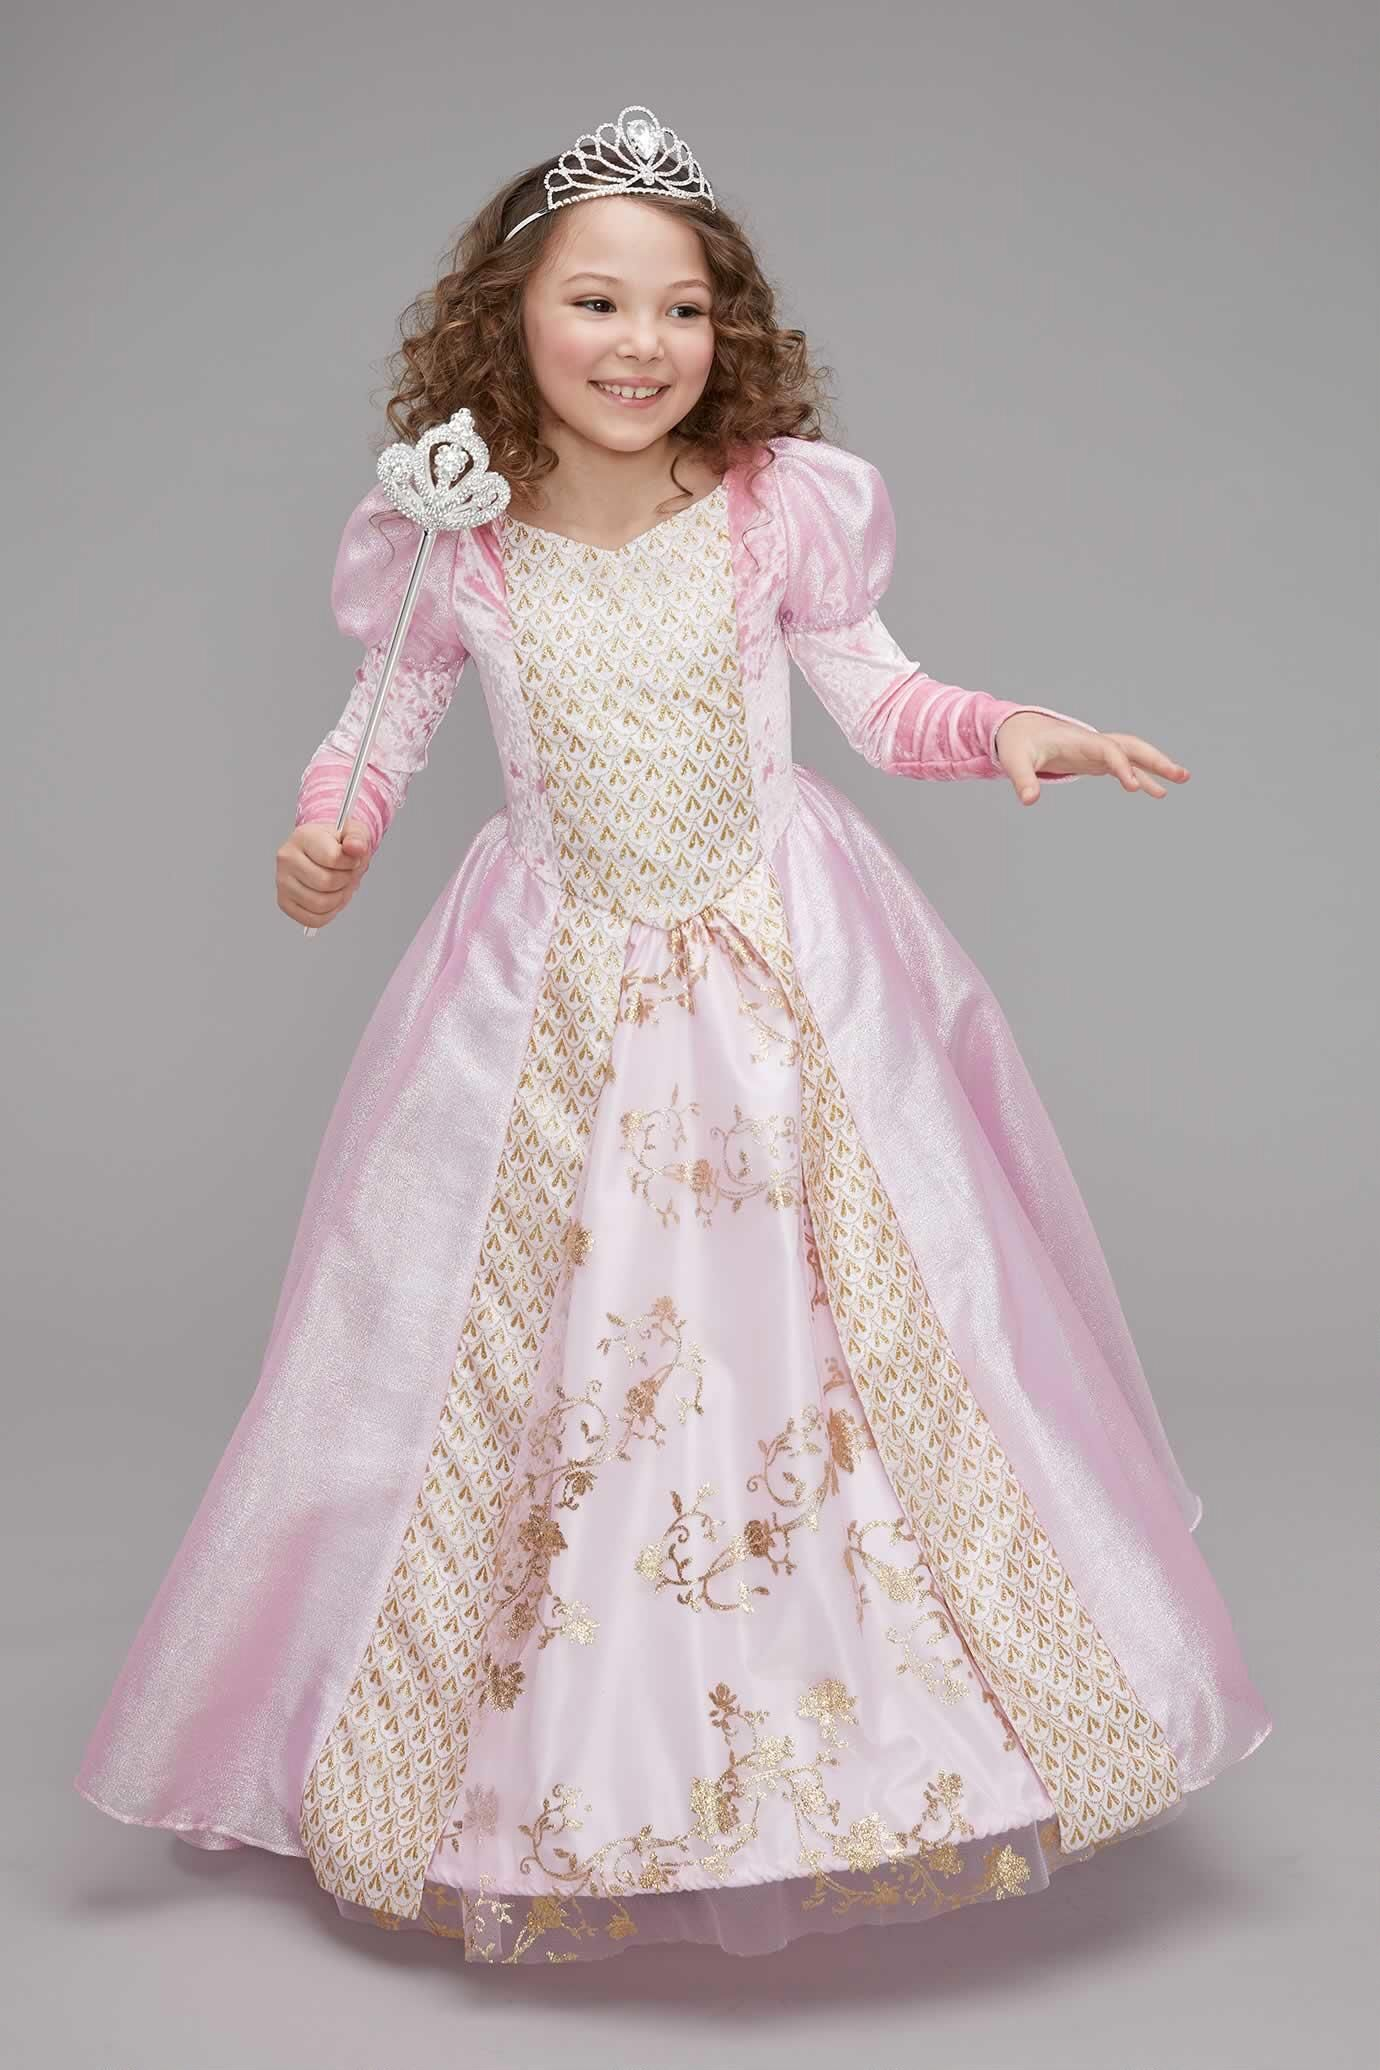 af08e45f7c7ce Sweet Fairy Princess Costume for Girls: #Chasingfireflies  $79.00$30.00$32.00$31.00$30.00